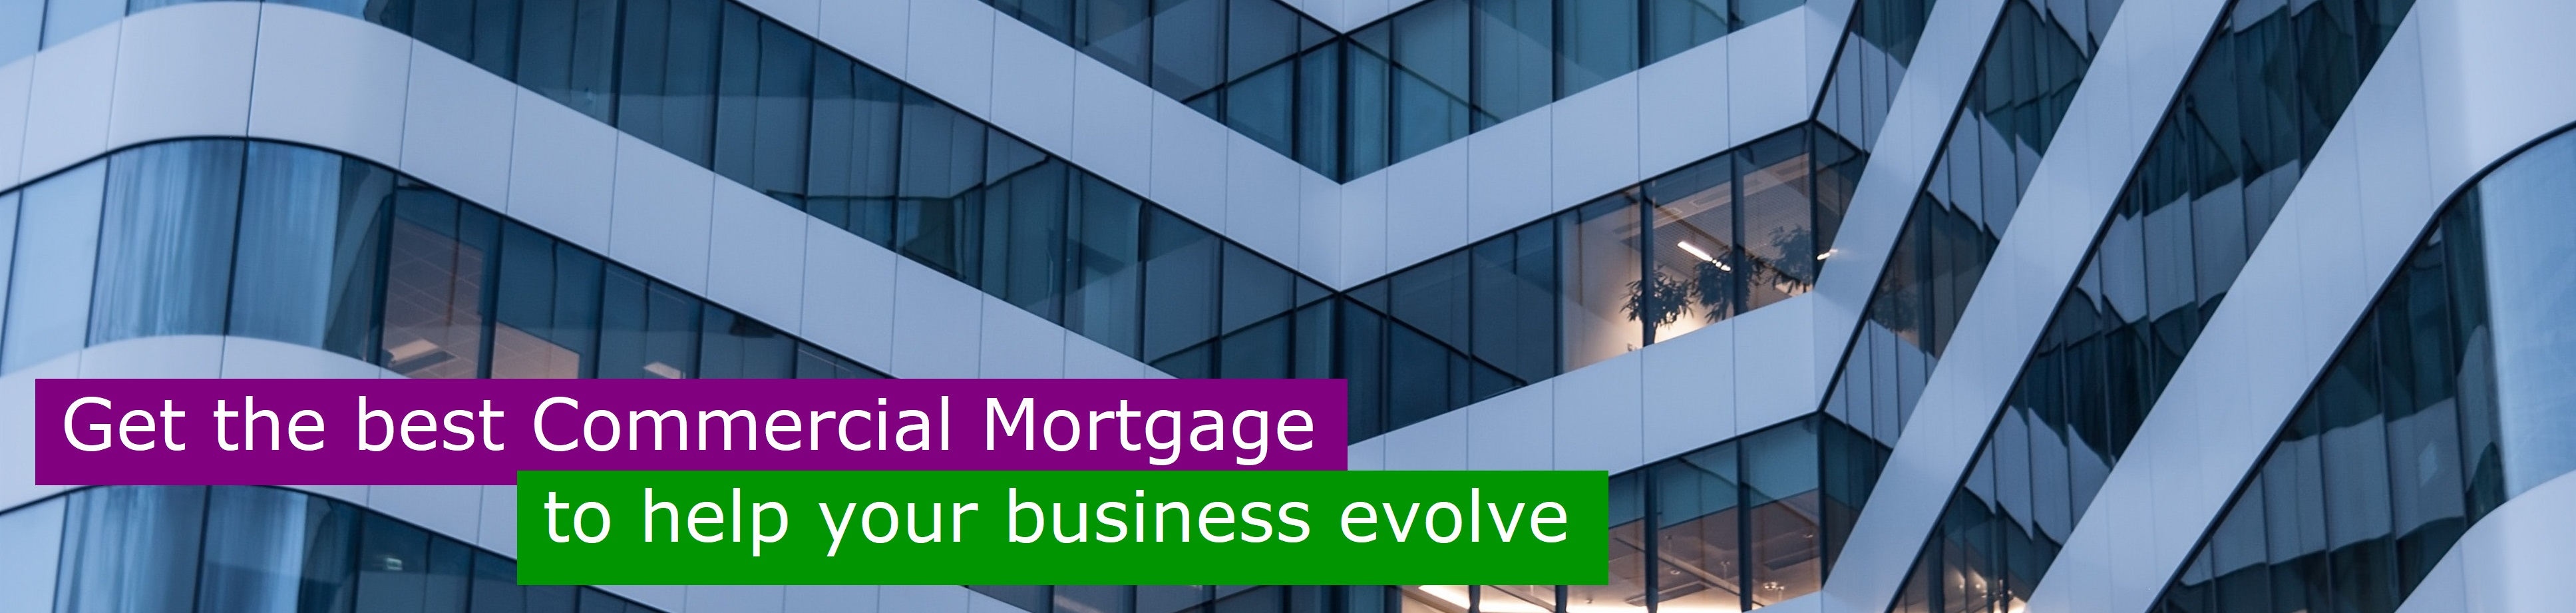 offices for commercial mortgages